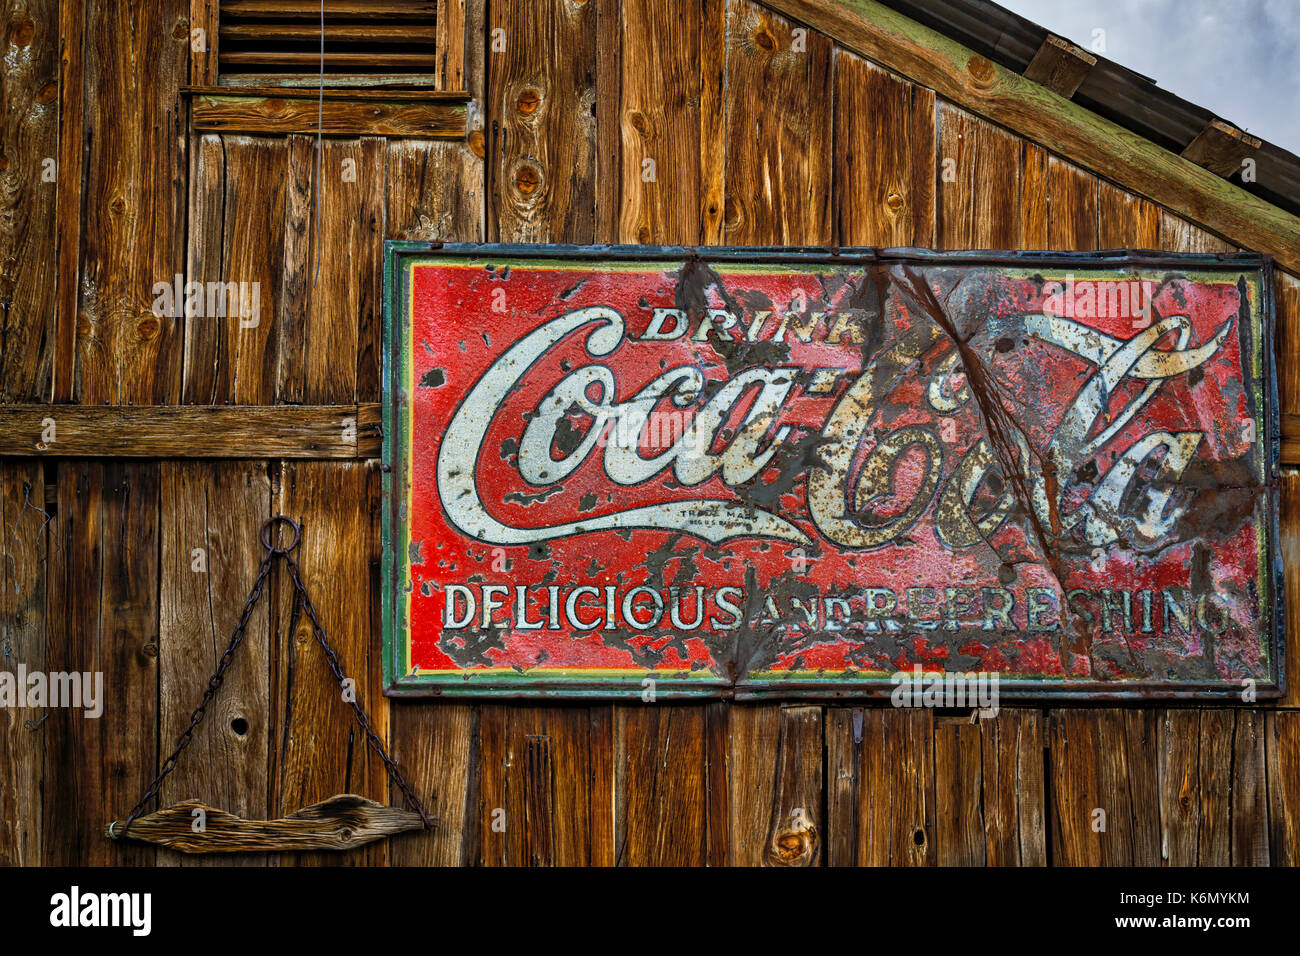 Drink Coca Cola Sign - Vintage Drink Coca Cola, Delicious and Refreshing sign against a wooden structure at an American Southwest Ghost town. - Stock Image